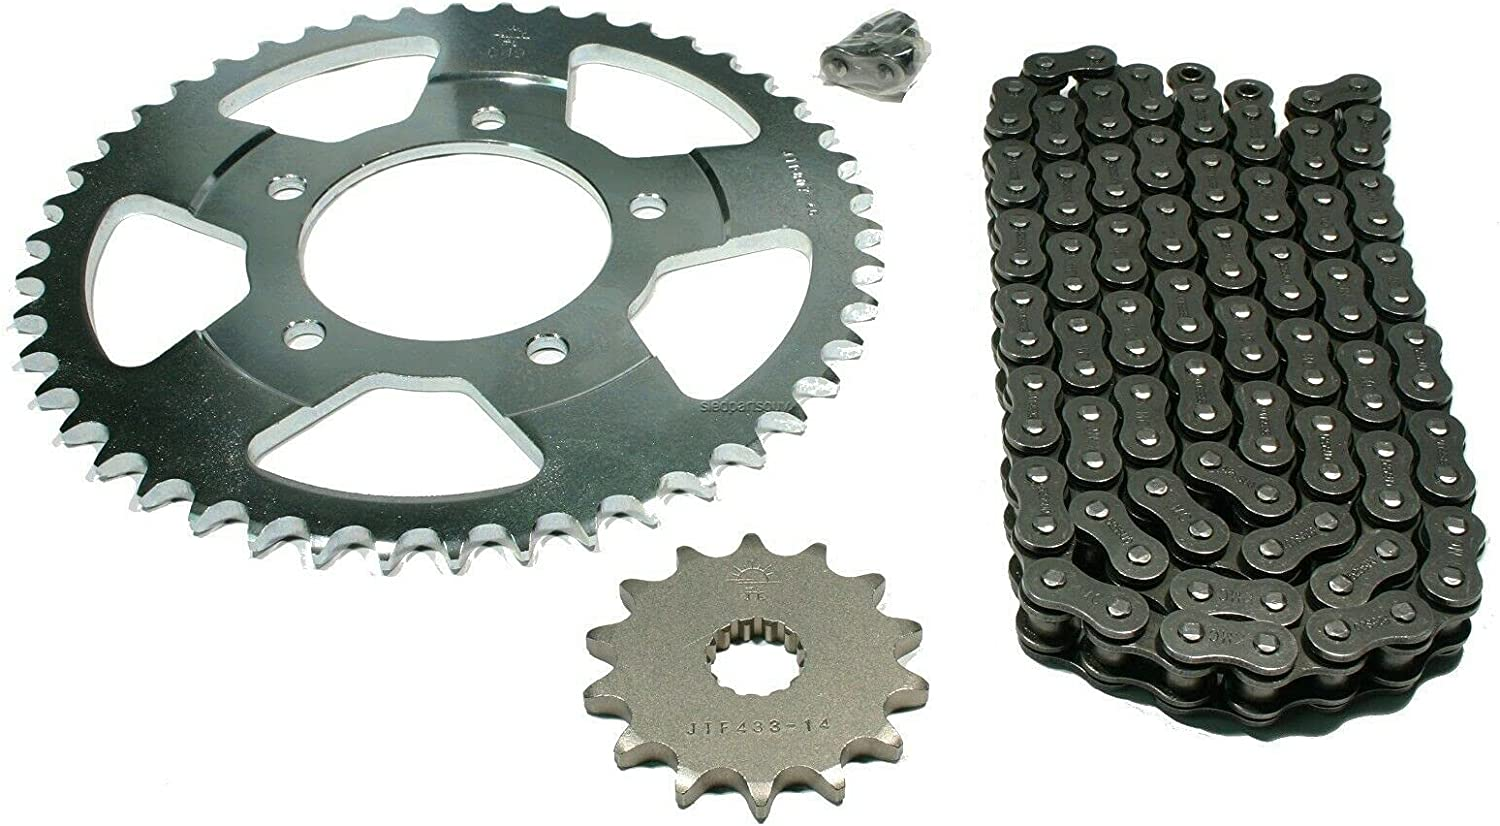 Chain 14 46 Tooth Sprocket Set fits - GSF400 Bit X 2021new Discount mail order shipping free 1993 400